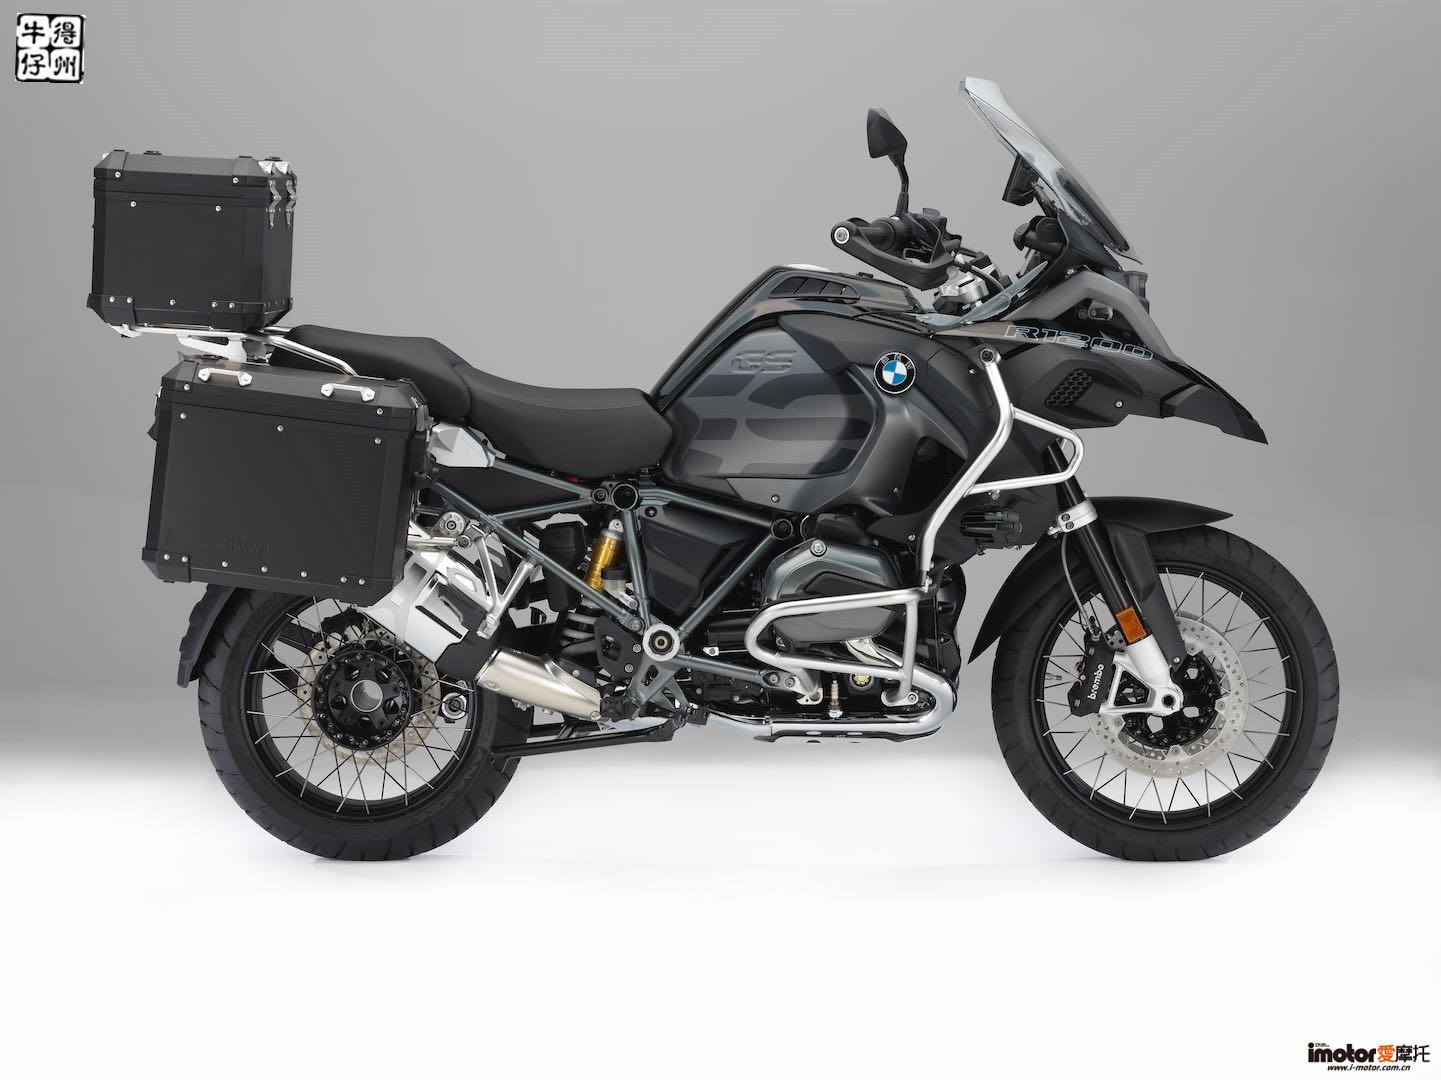 2018-bmw-r-1200-gs-adventure-black-edition-parts-1.jpg